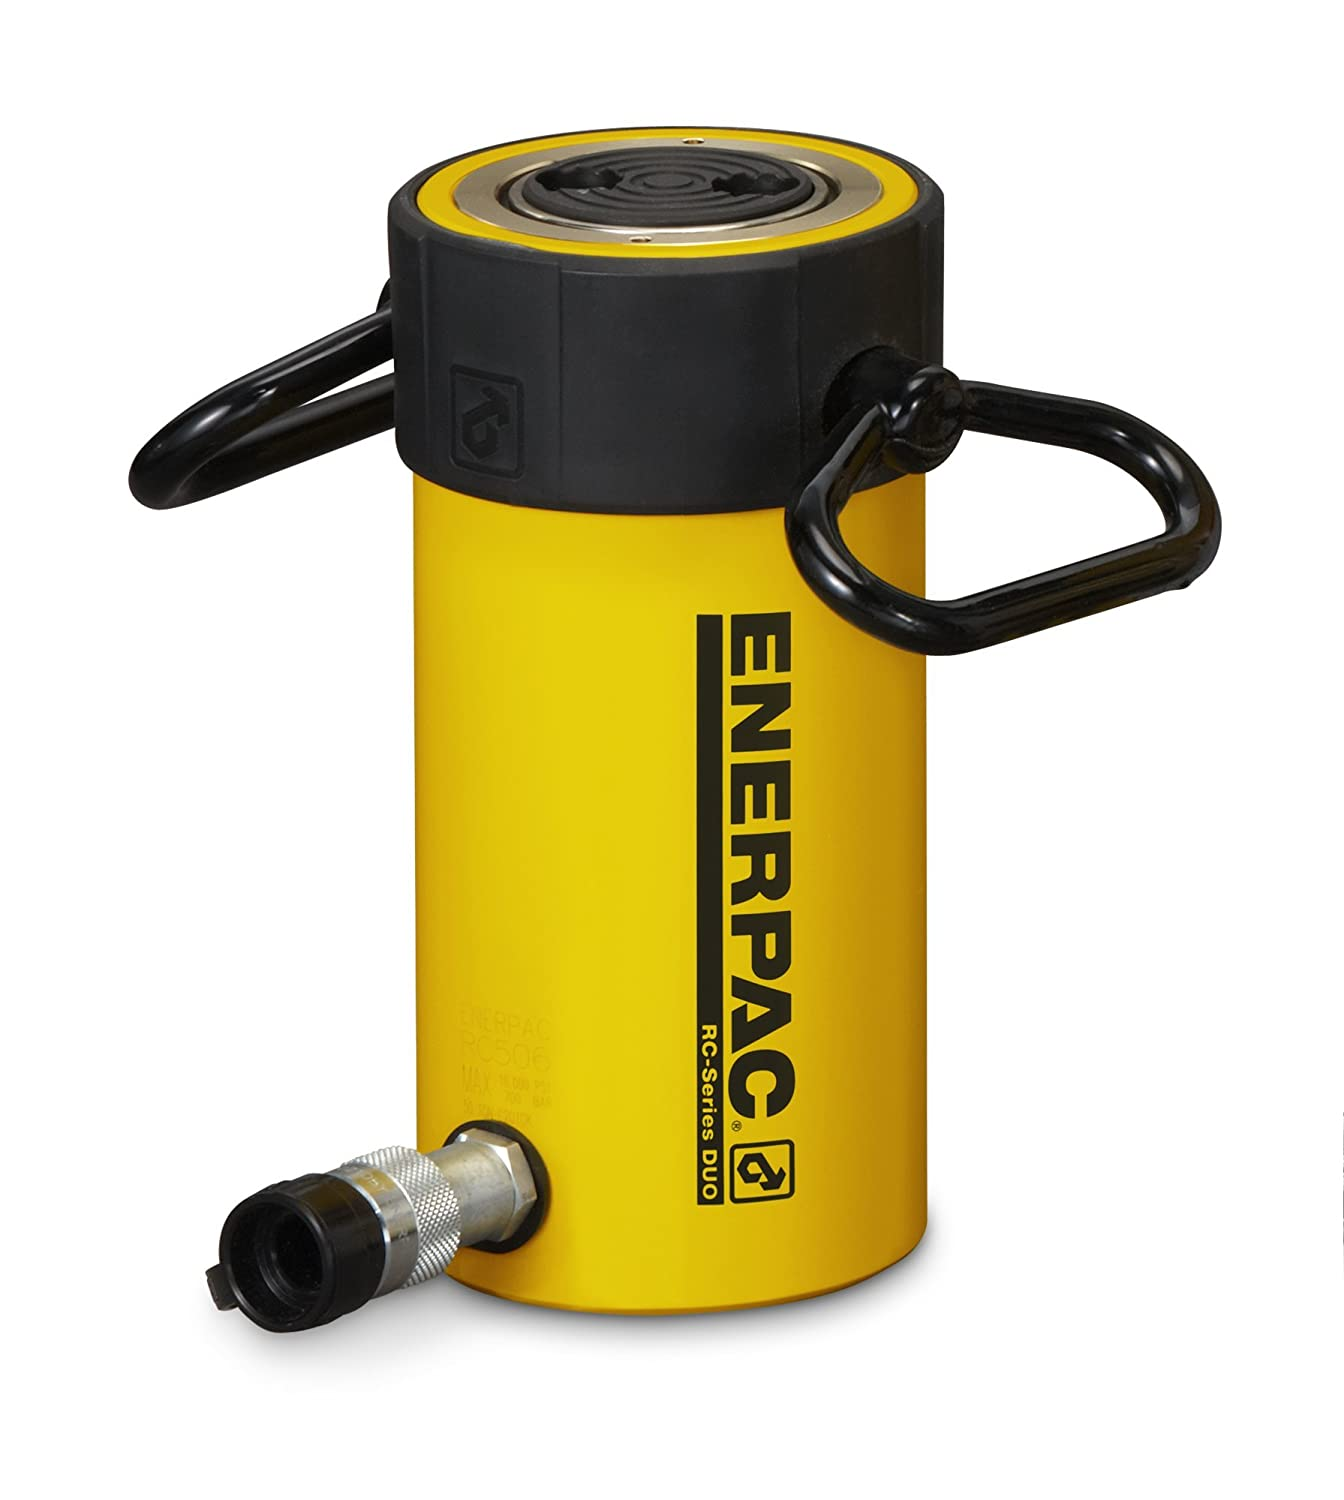 Single Port Enerpac RC-502 Single-Acting Alloy Steel Hydraulic Cylinder with 50 Ton Capacity 2 Stroke